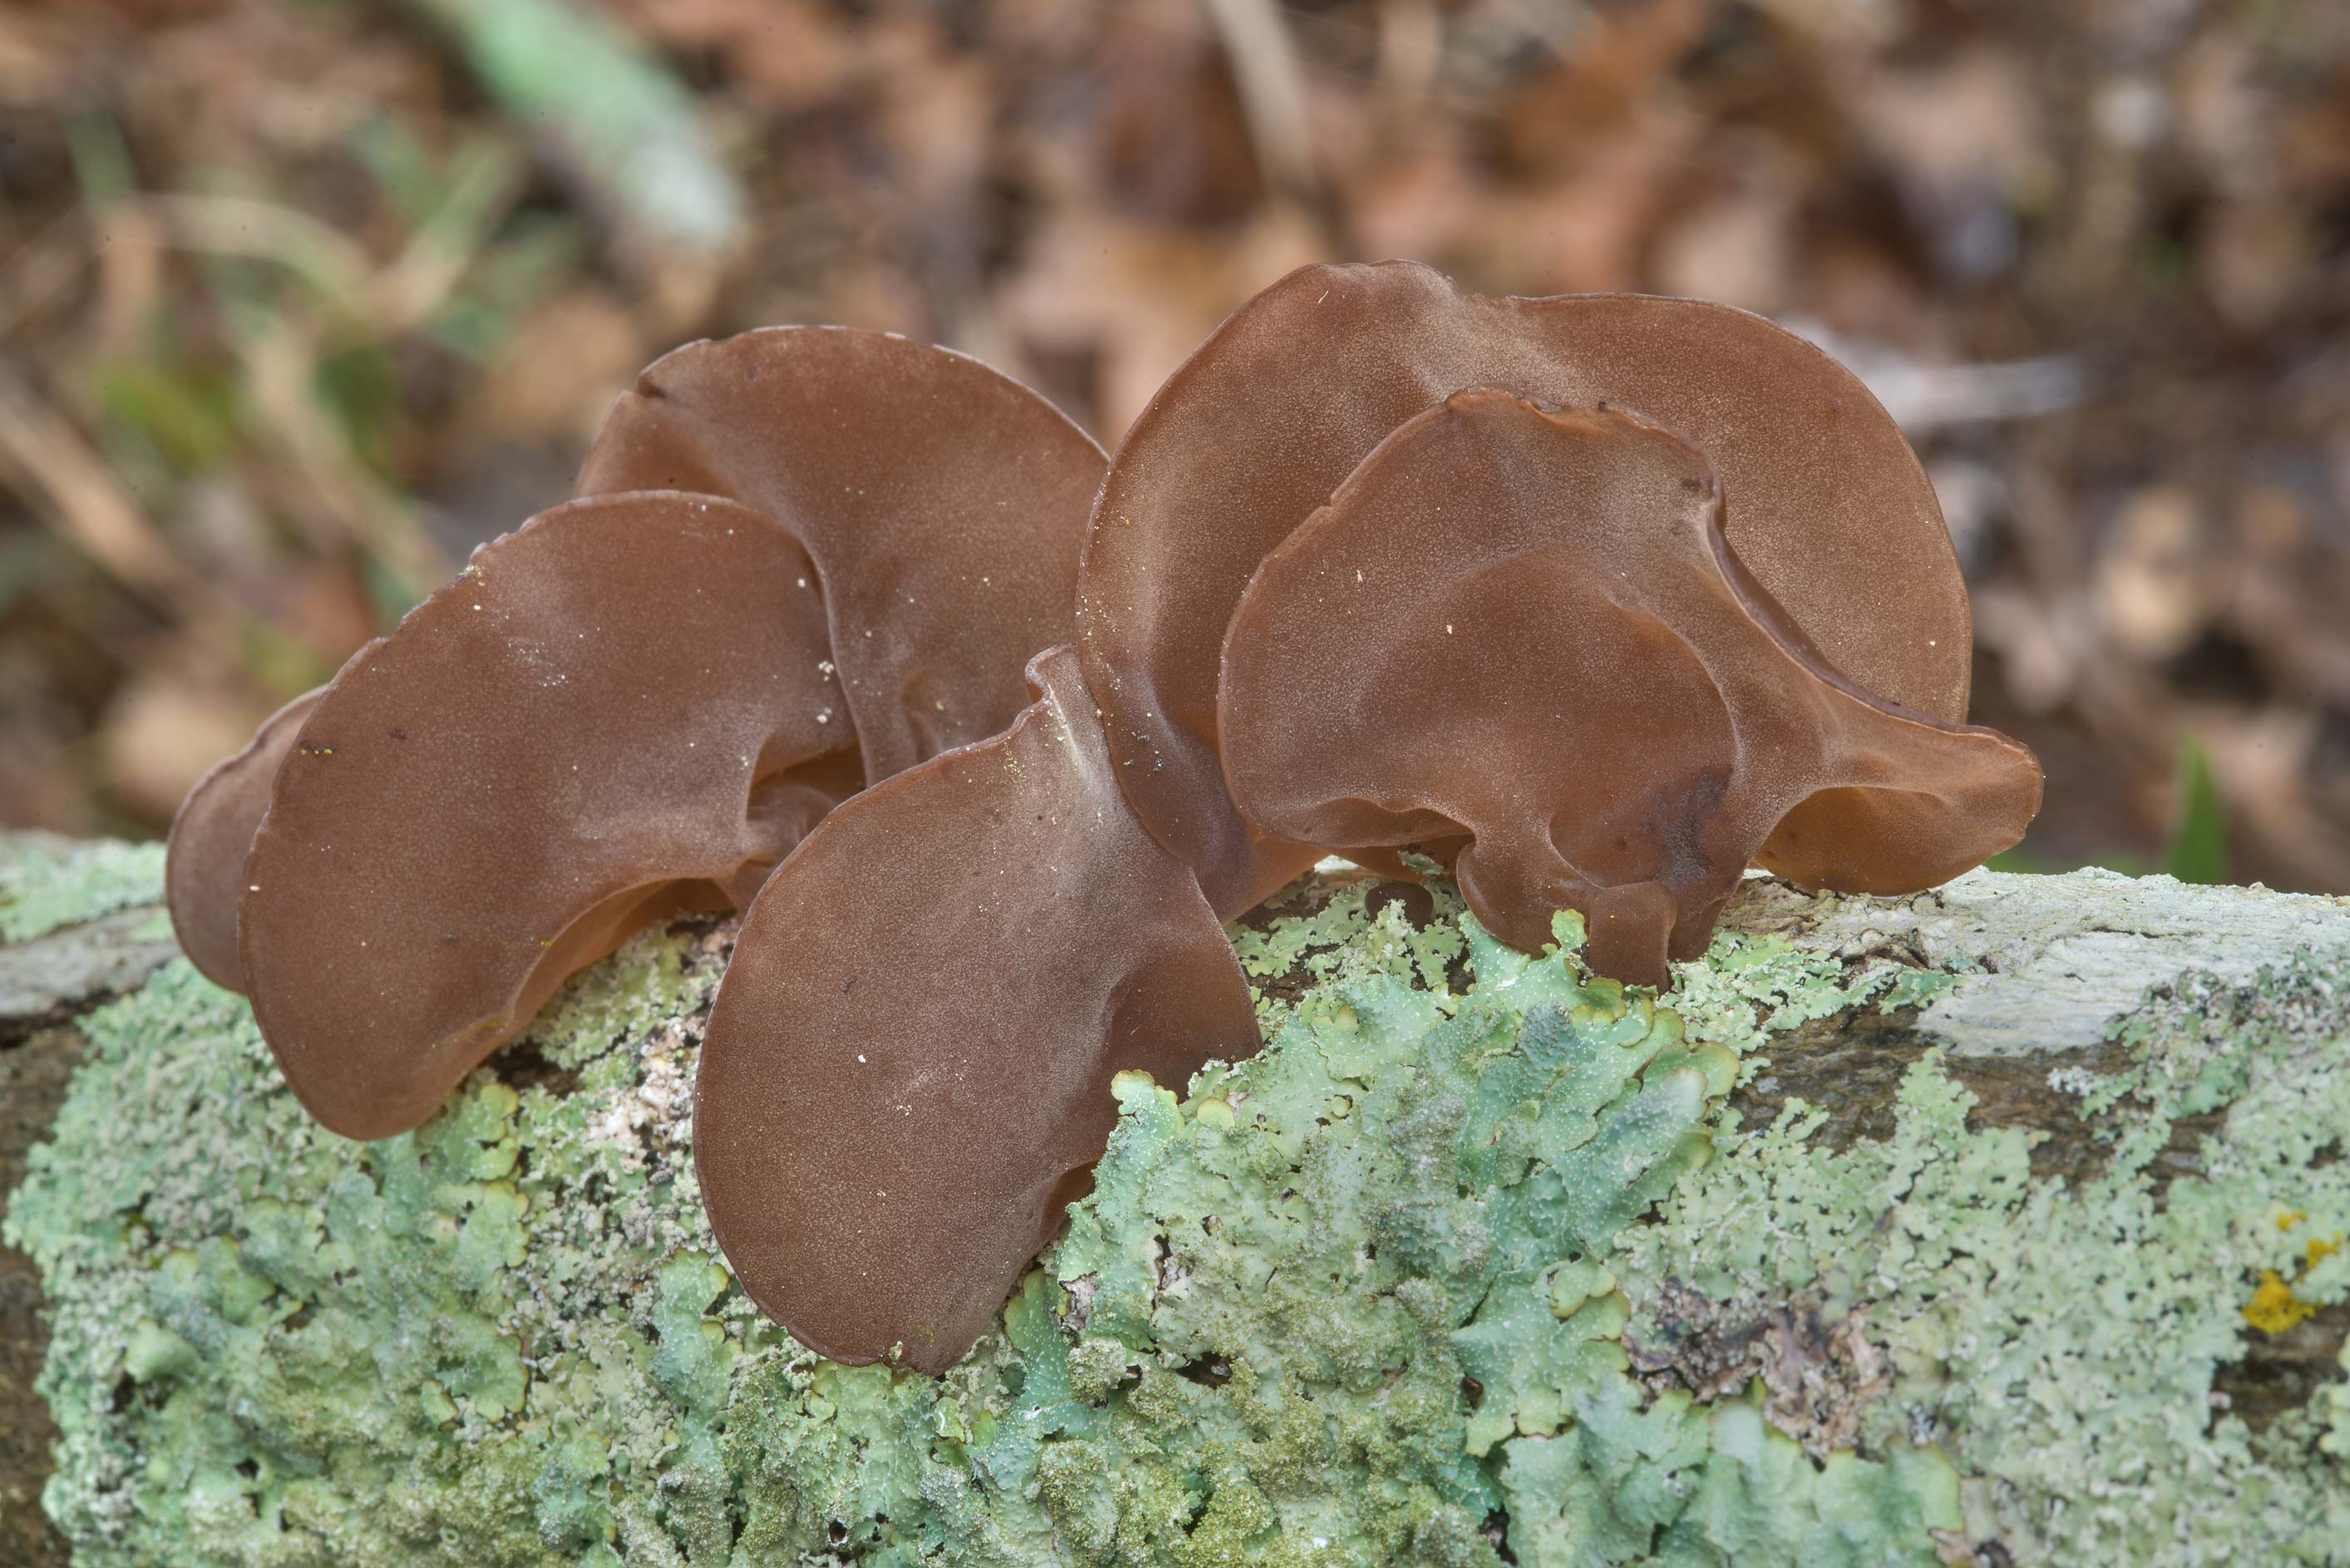 Wood ear mushrooms Auricularia angiospermarum...Ashburn St.. College Station, Texas